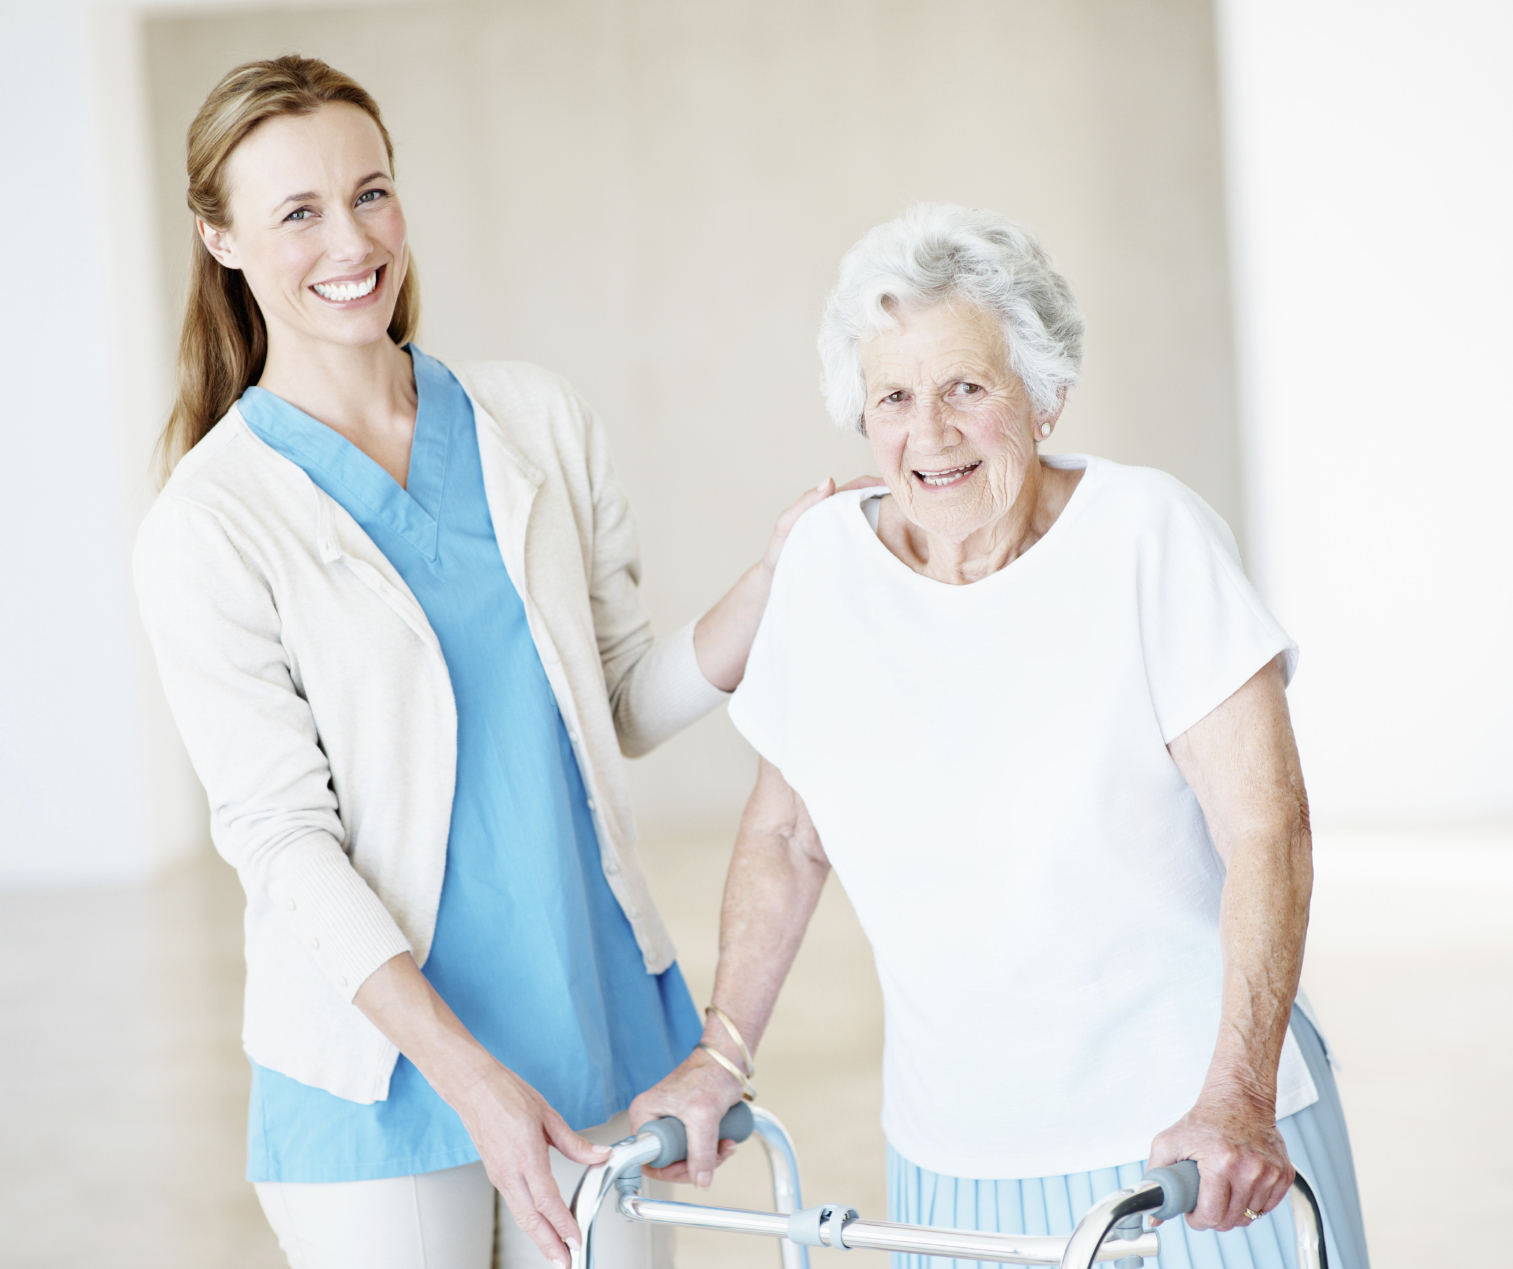 fall prevention on elderly patients in Elderly hospitalized patients have 35-40% fall incidence fall prevention in the elderly 11/14/2011 author disclosure kevin m means, md.